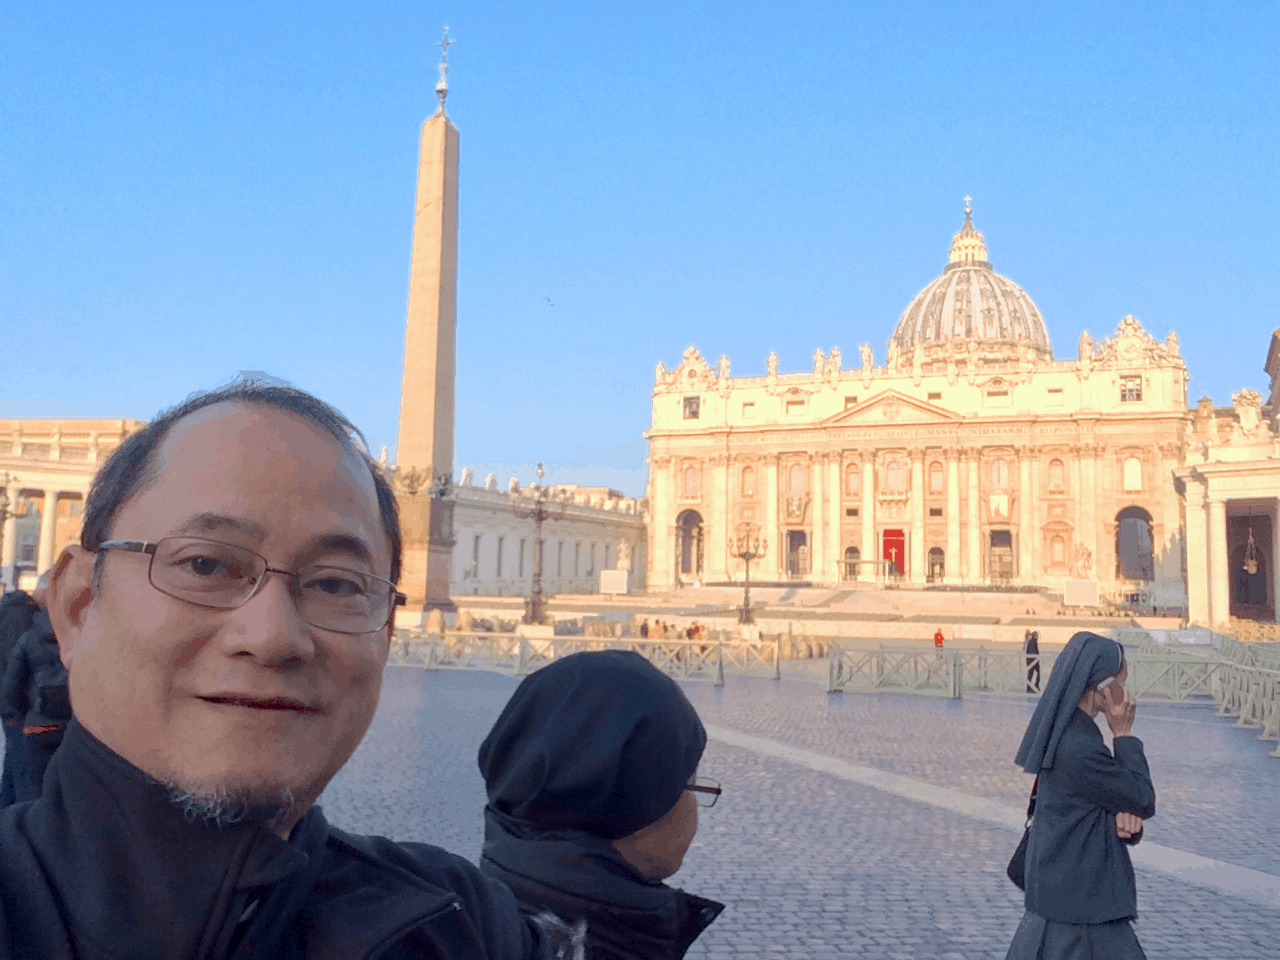 St Peter's Square - up for security check to enter the Basilica